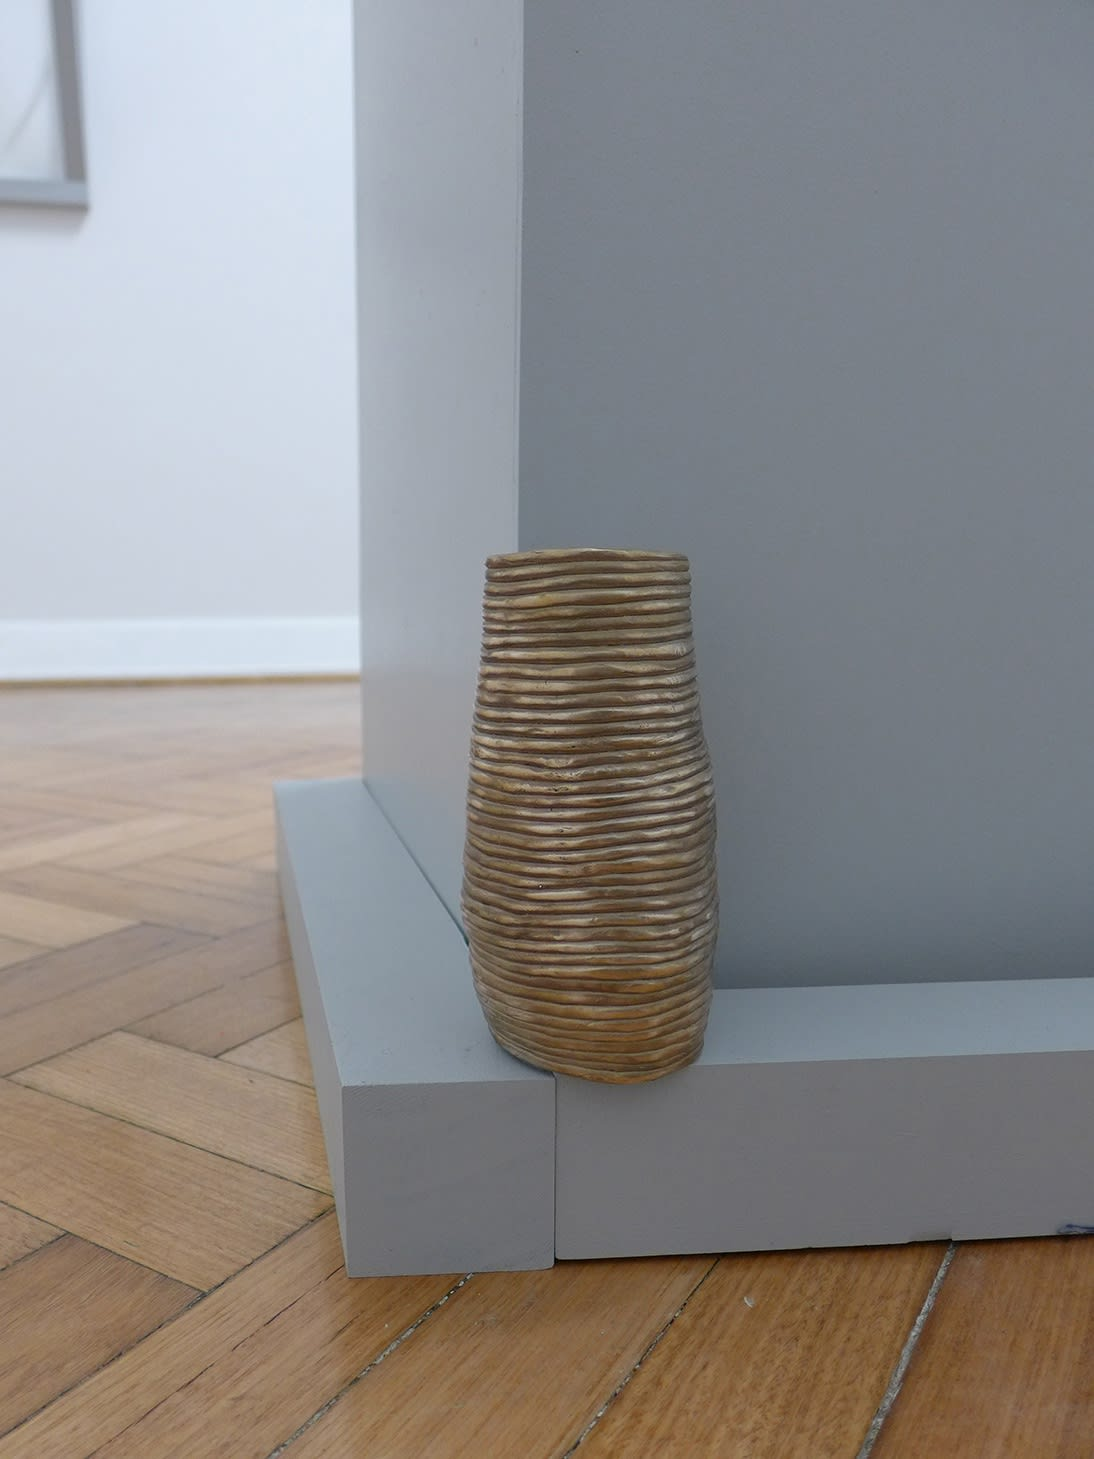 Bianca Hester, performance object #5, 2014